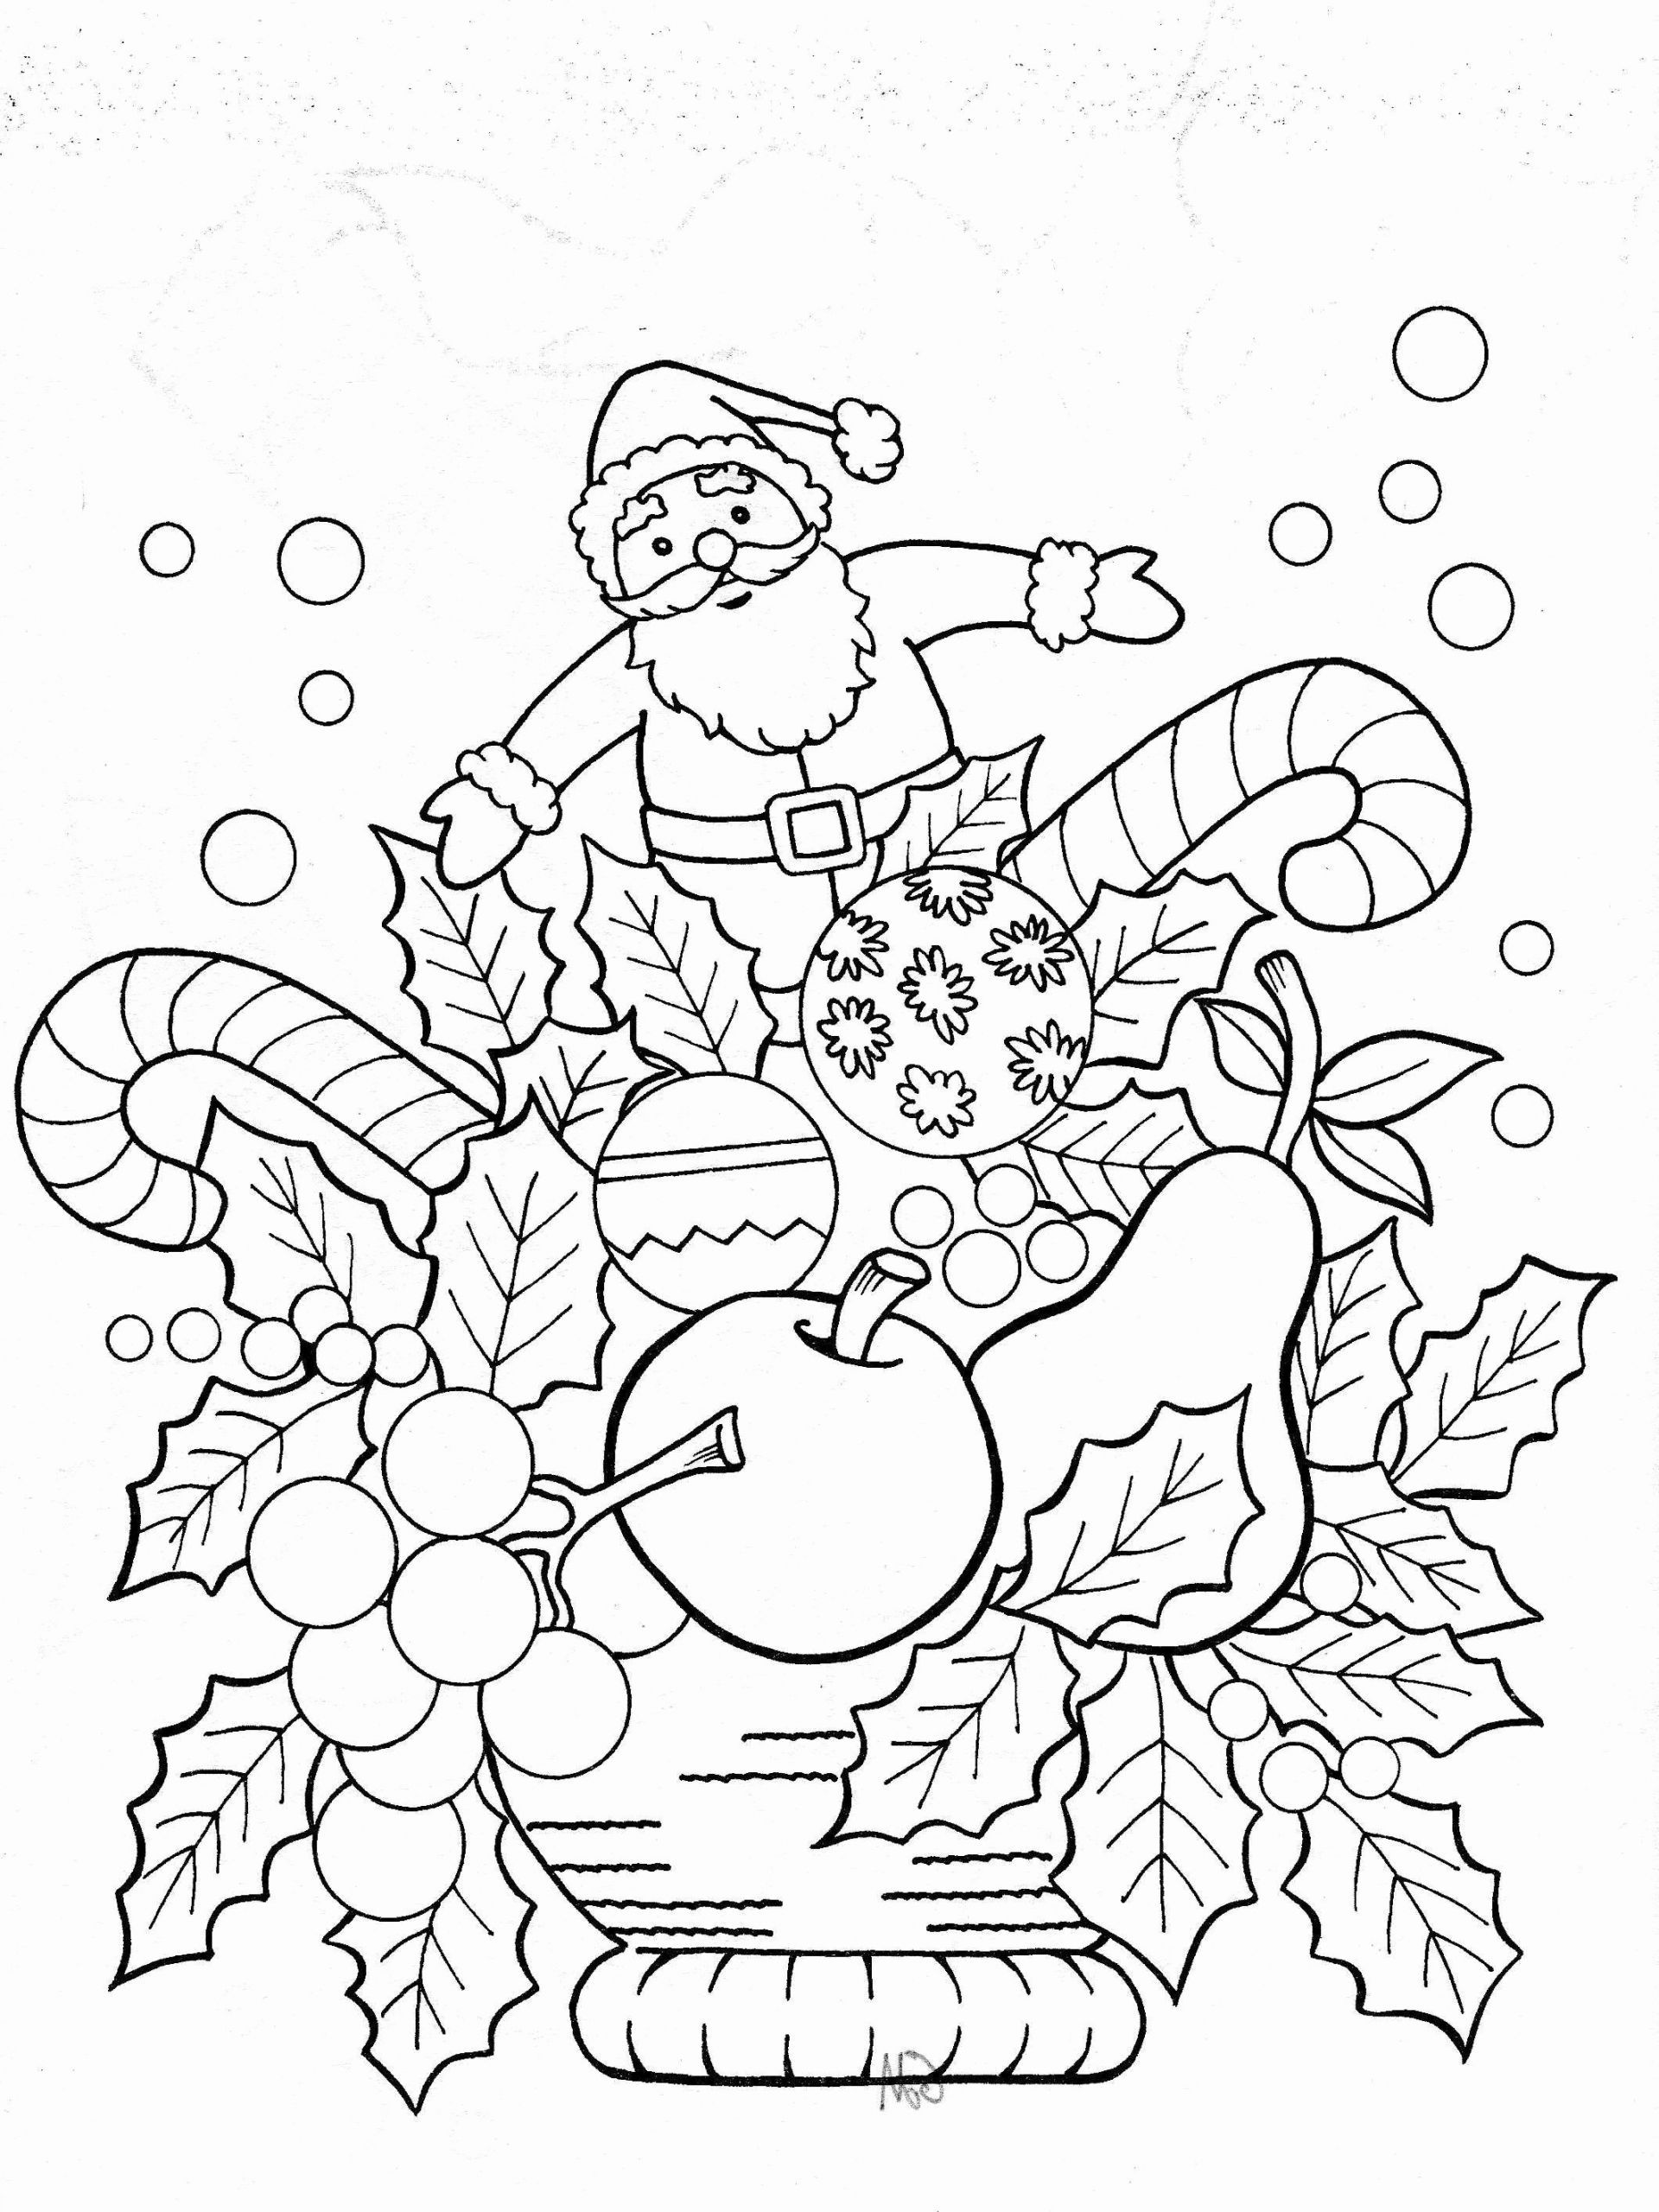 Coloring Picture Of A Dog Fresh Christmas Coloring Pages For Printable New Cool Coloring Fall Coloring Pages Cool Coloring Pages Santa Coloring Pages